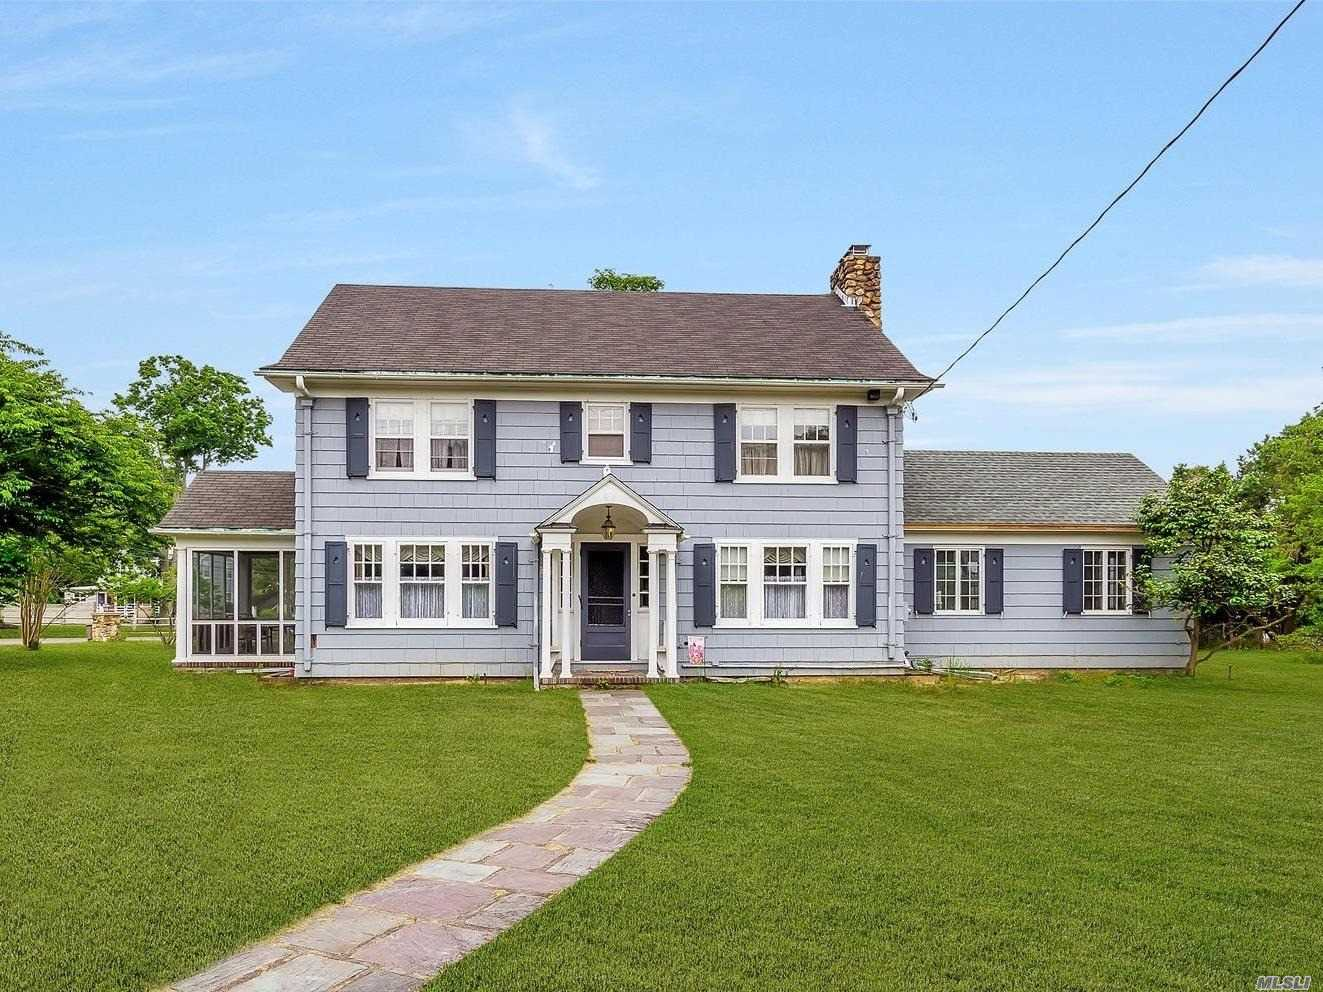 Own A Piece Of Paradise In The Gracious Colonial With Spectacular Views Of The Beautiful Moriches Bay & Dune Road. Hardwood Flooring Throughout This Spacious & Inviting Home Thats Filled With Old World Charm Throughout Every Room. Call Today To View This Very Unique & Rare Find Set On Over An Acre Property, One For Sure Not To Miss If Older Homes With A View Is Your Love. No Flood Insurance Needed Here. Lots Of Potential!